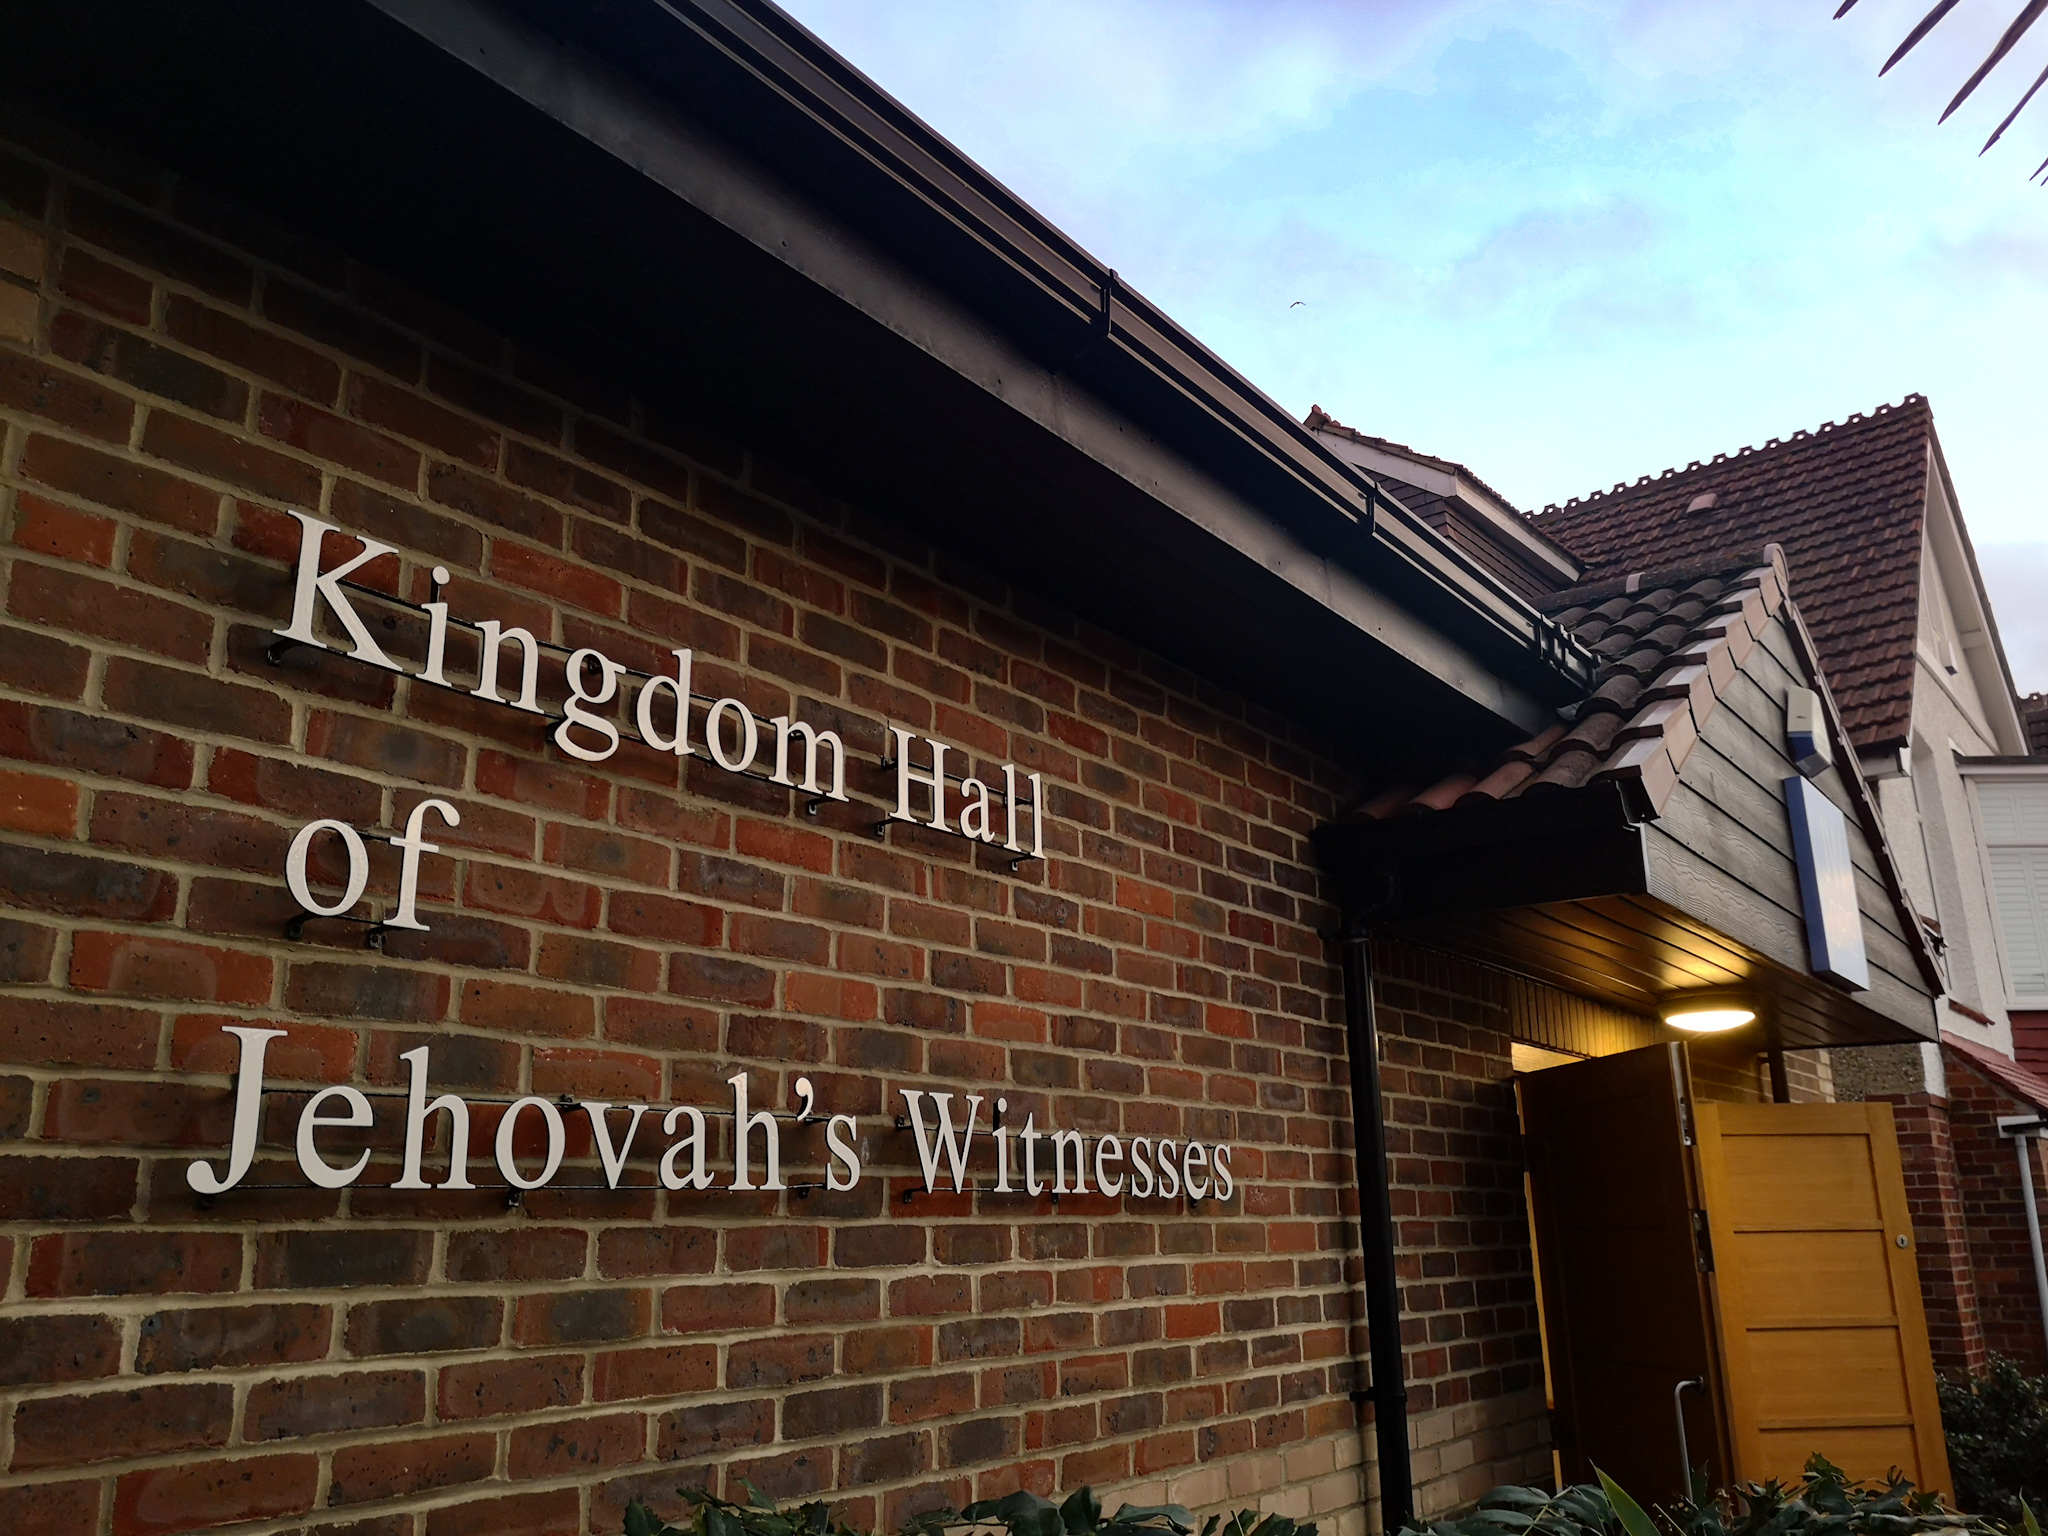 Kingdom Hall of the Jehovah's Witnesses